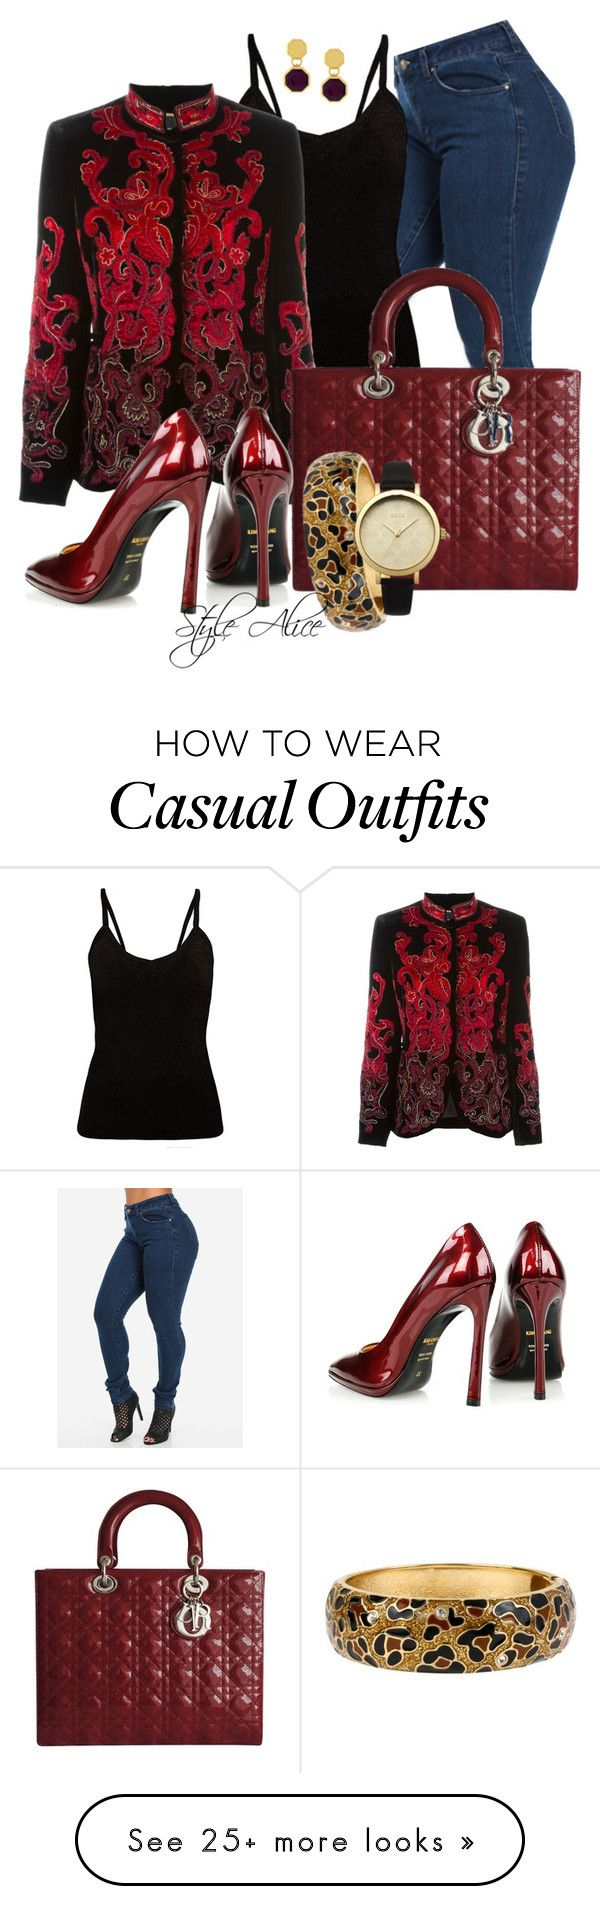 """Casual"" by alice-fortuna on Polyvore featuring Alberta Ferretti, Christian Dior, Kim Kwang, Louise et Cie, Betsey Johnson and Lipsy"